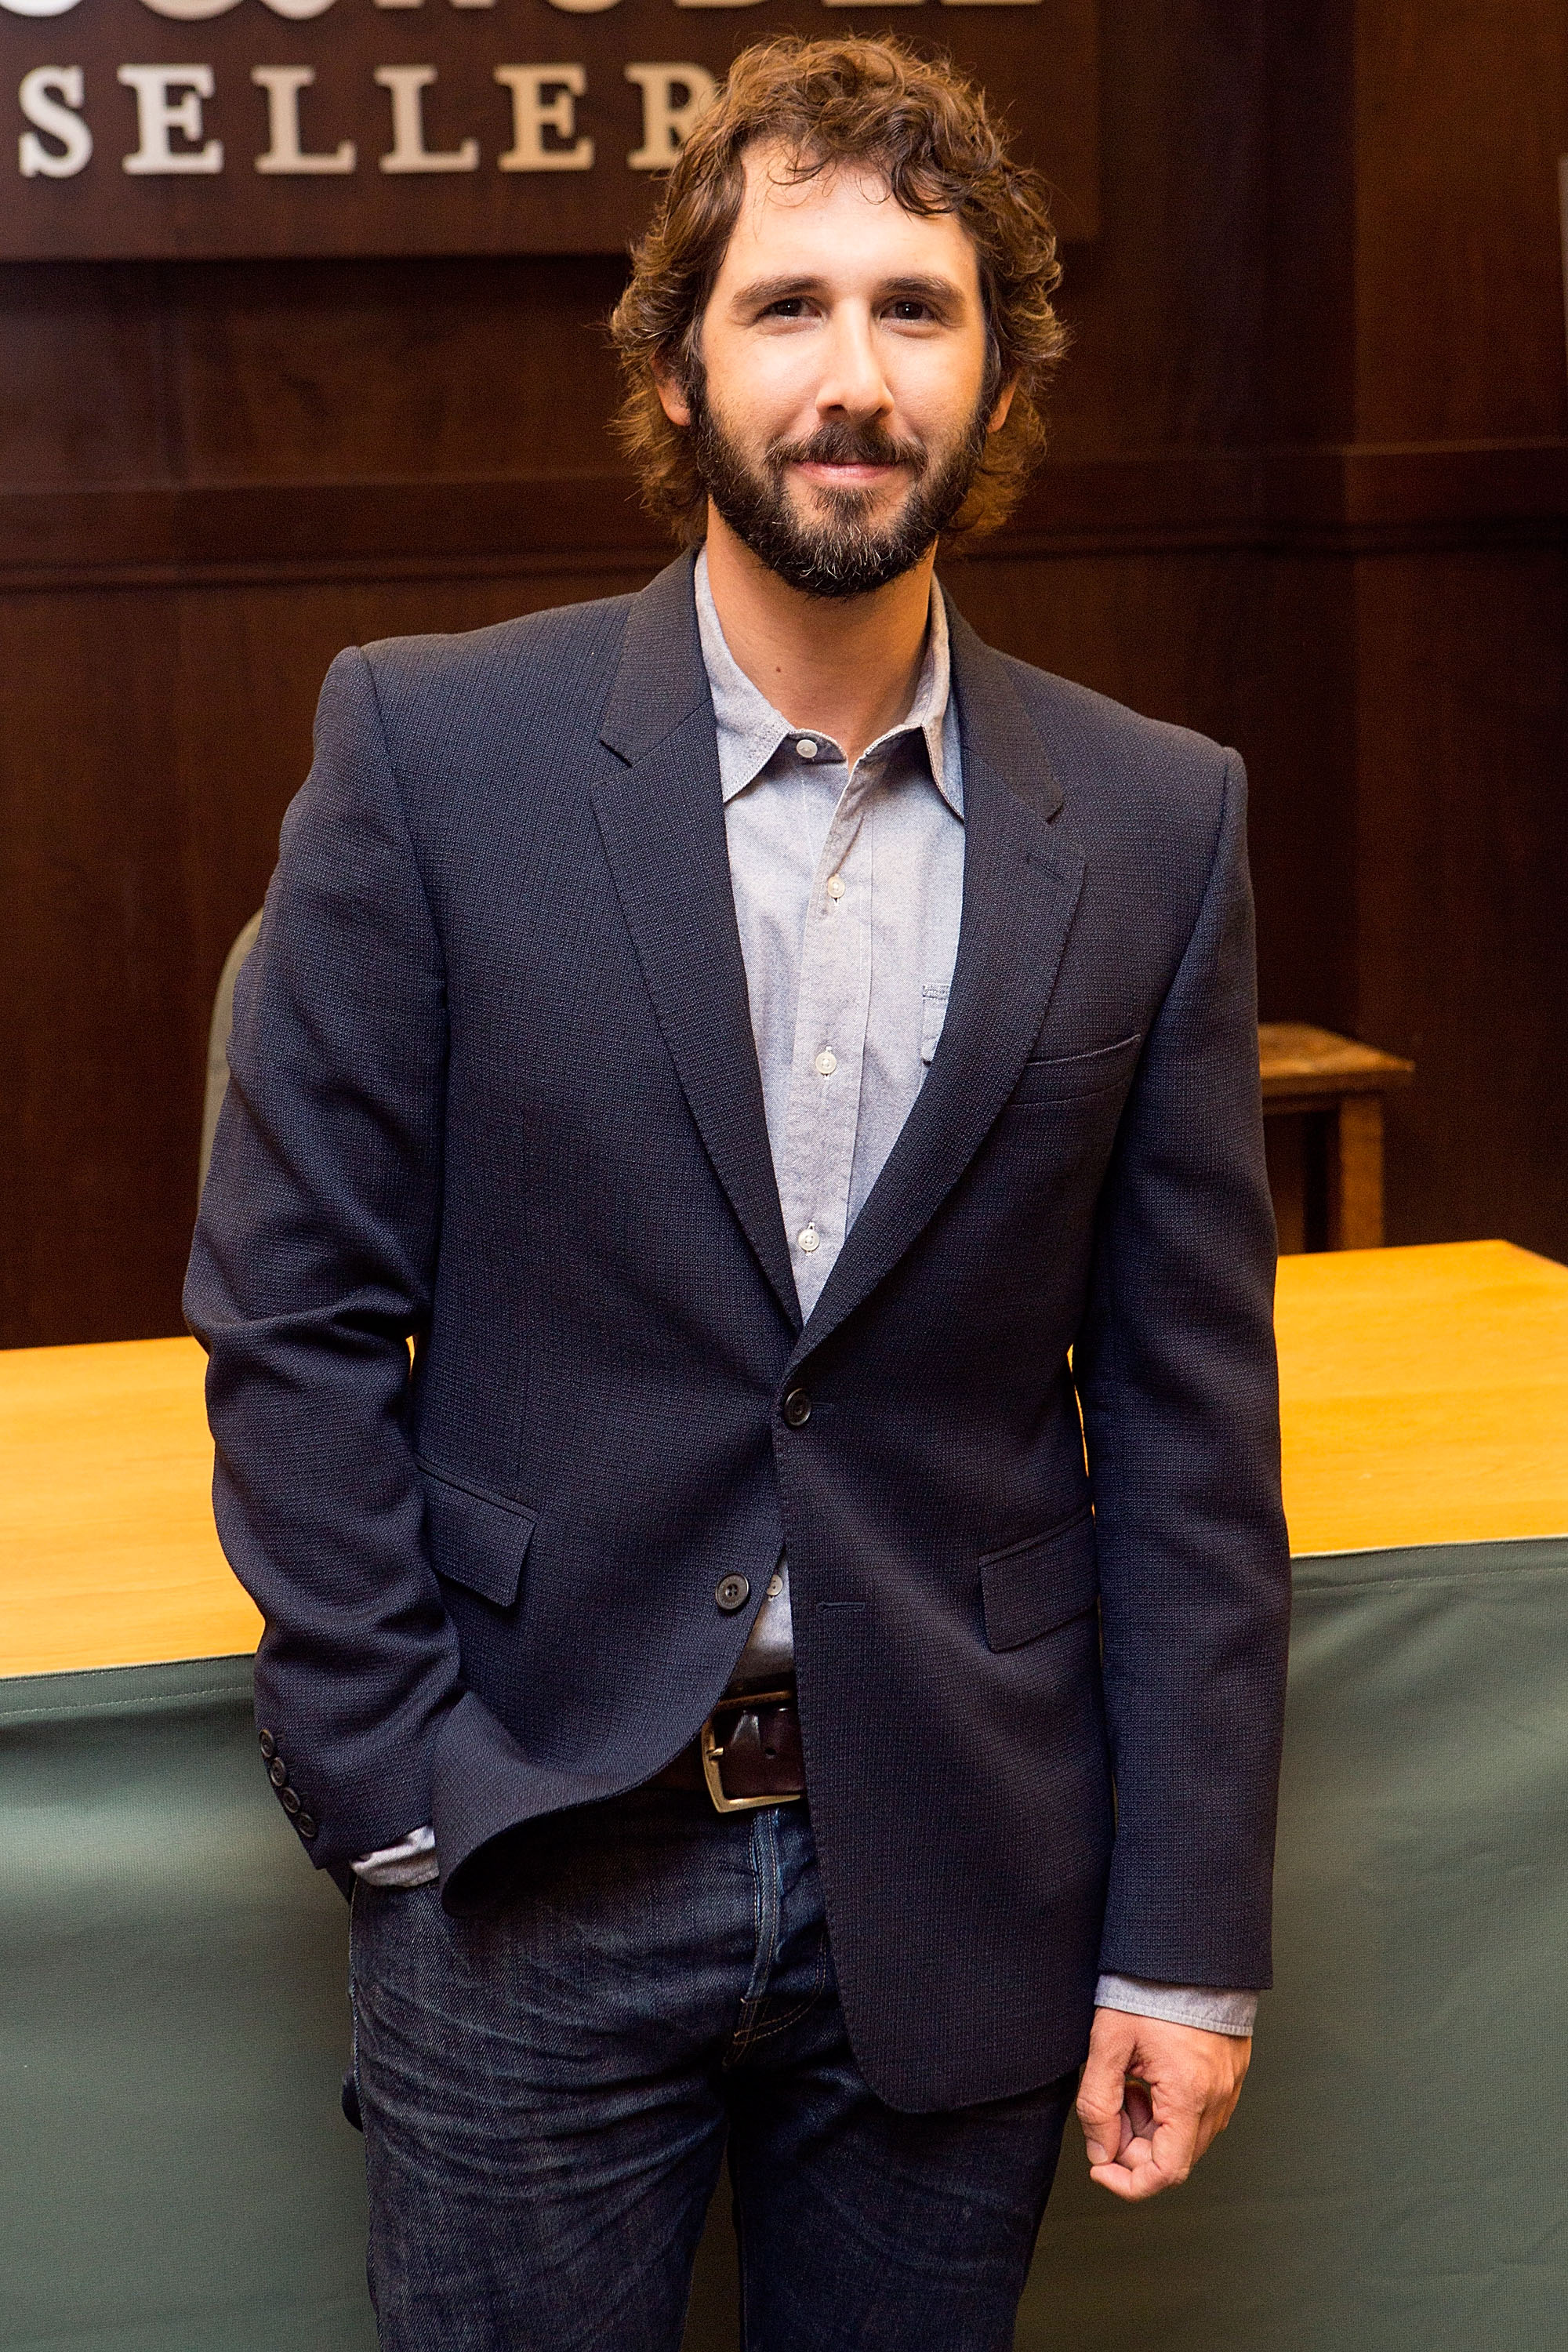 Josh Groban during a book signing at Barnes & Noble bookstore at The Grove. | Source: Getty Images